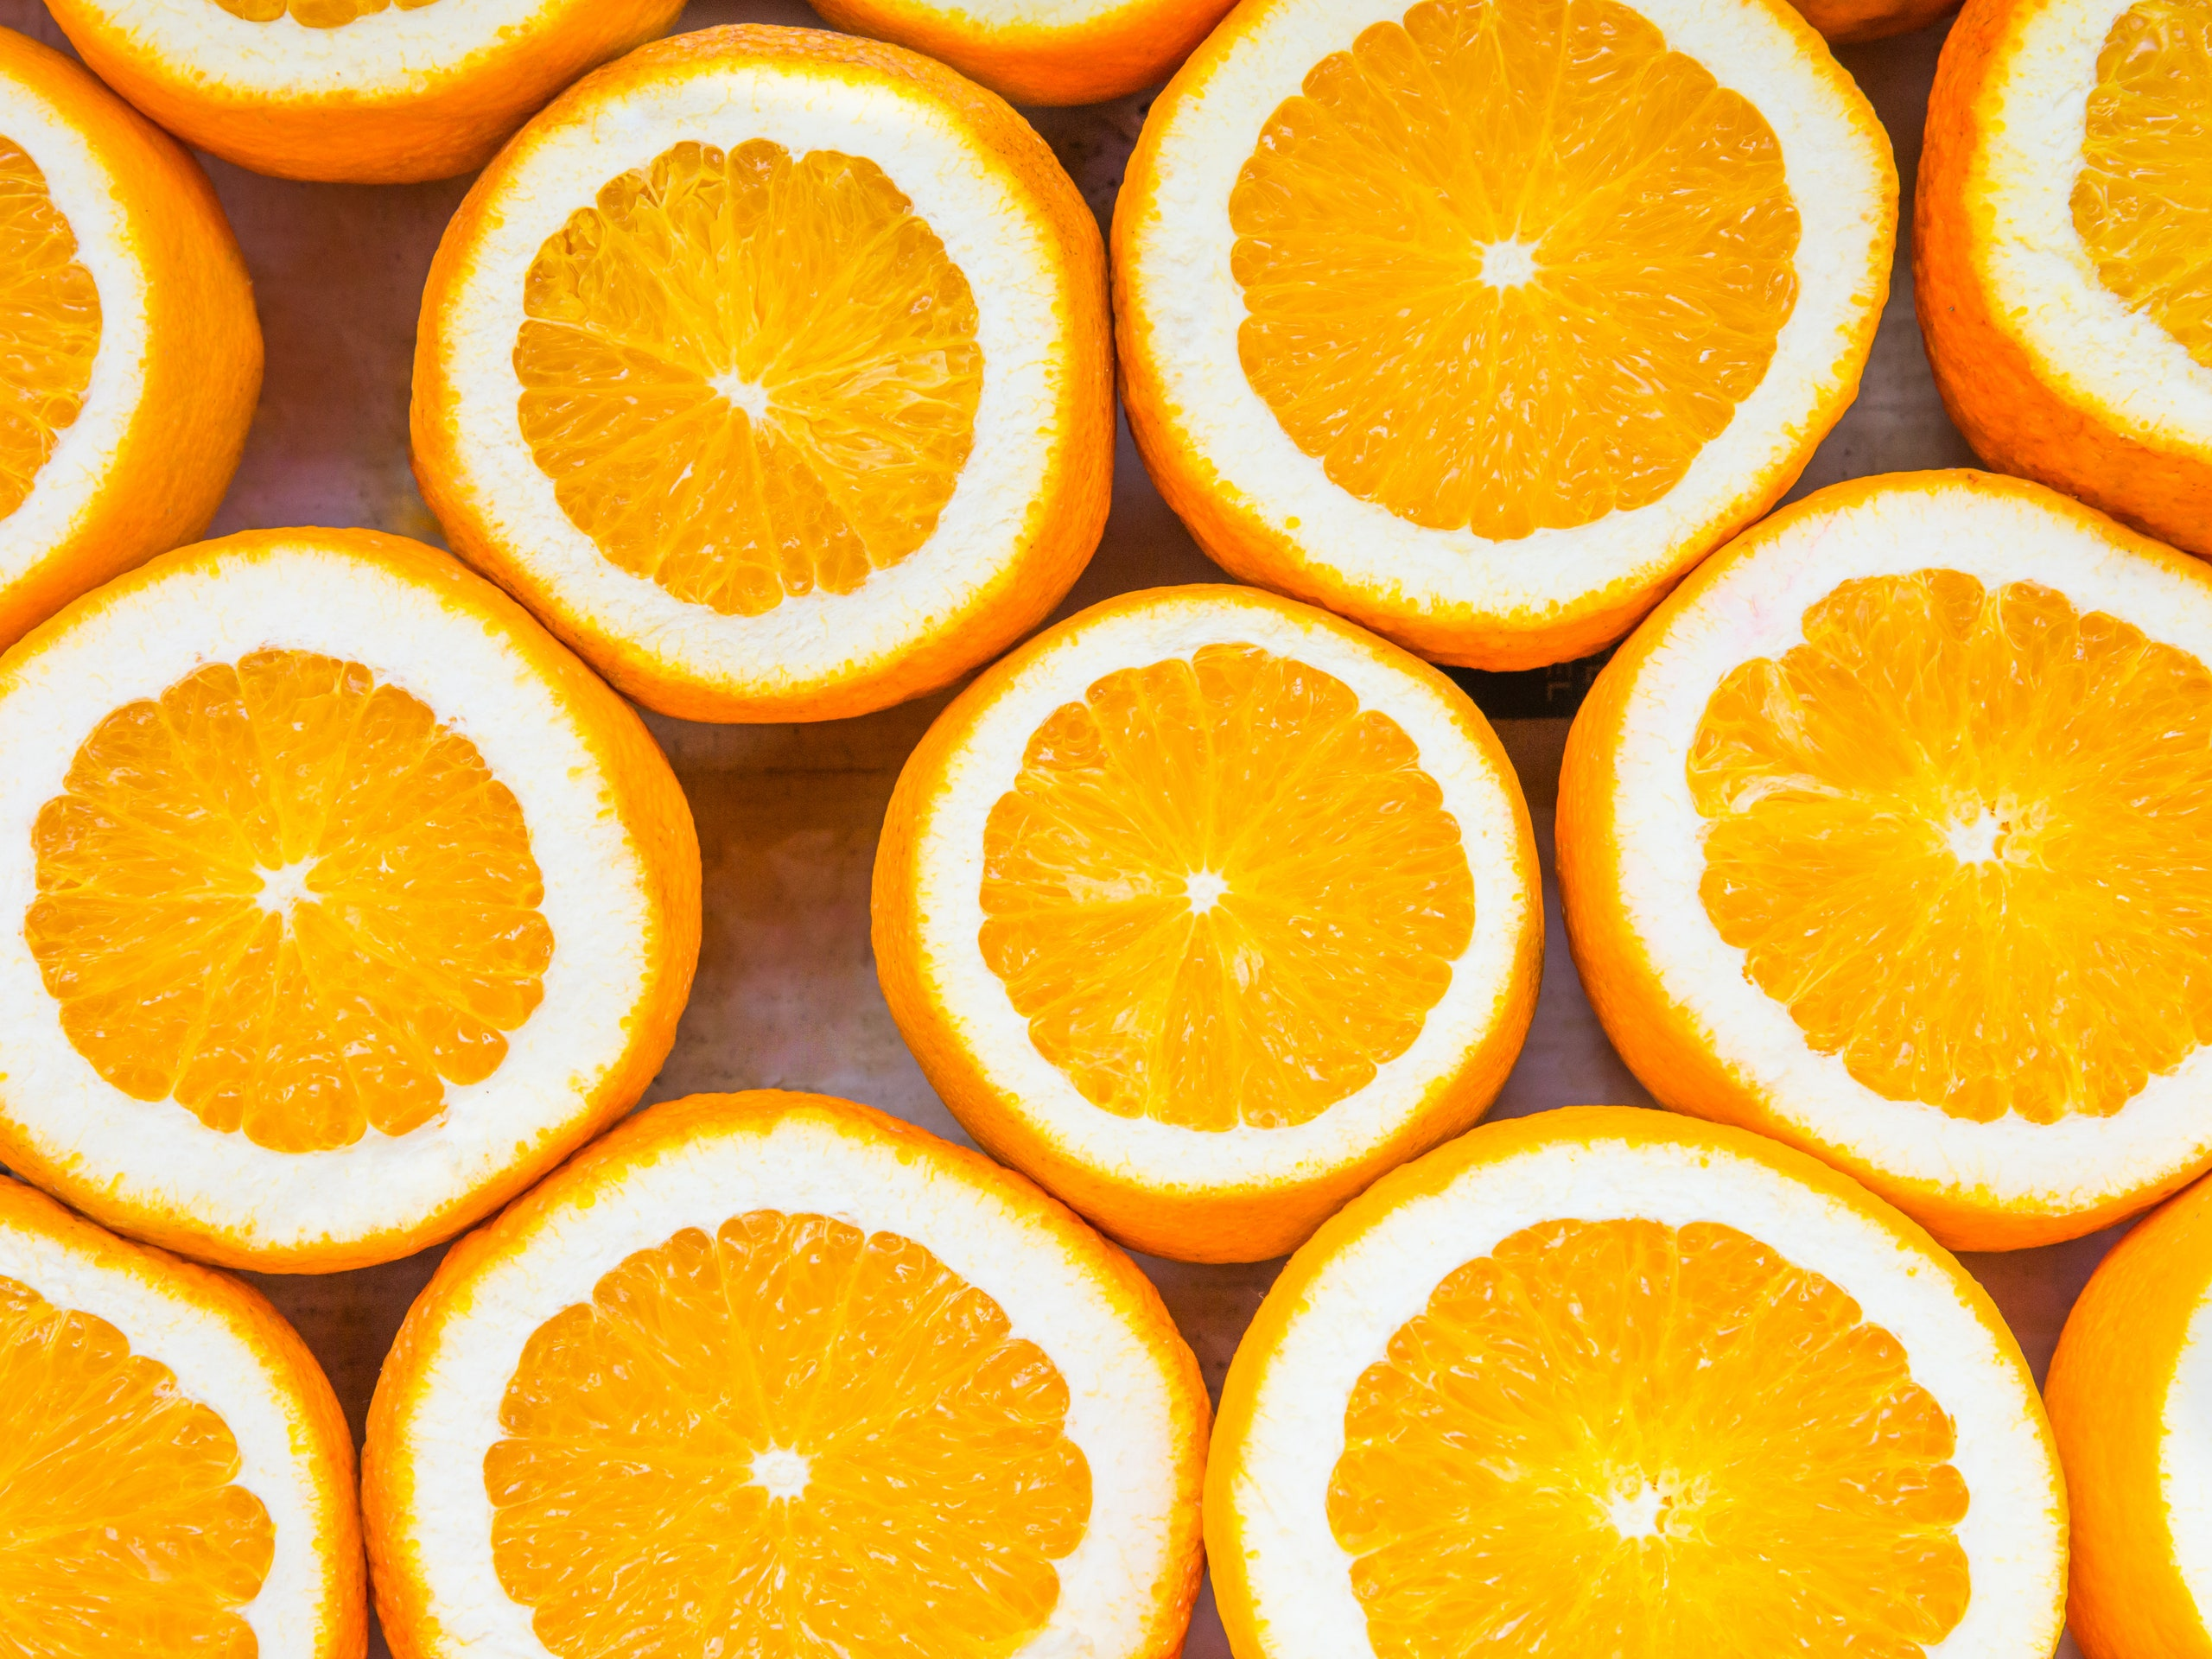 Allergies Got You Down – We've Got You Covered With High-Powered IV VIT C!